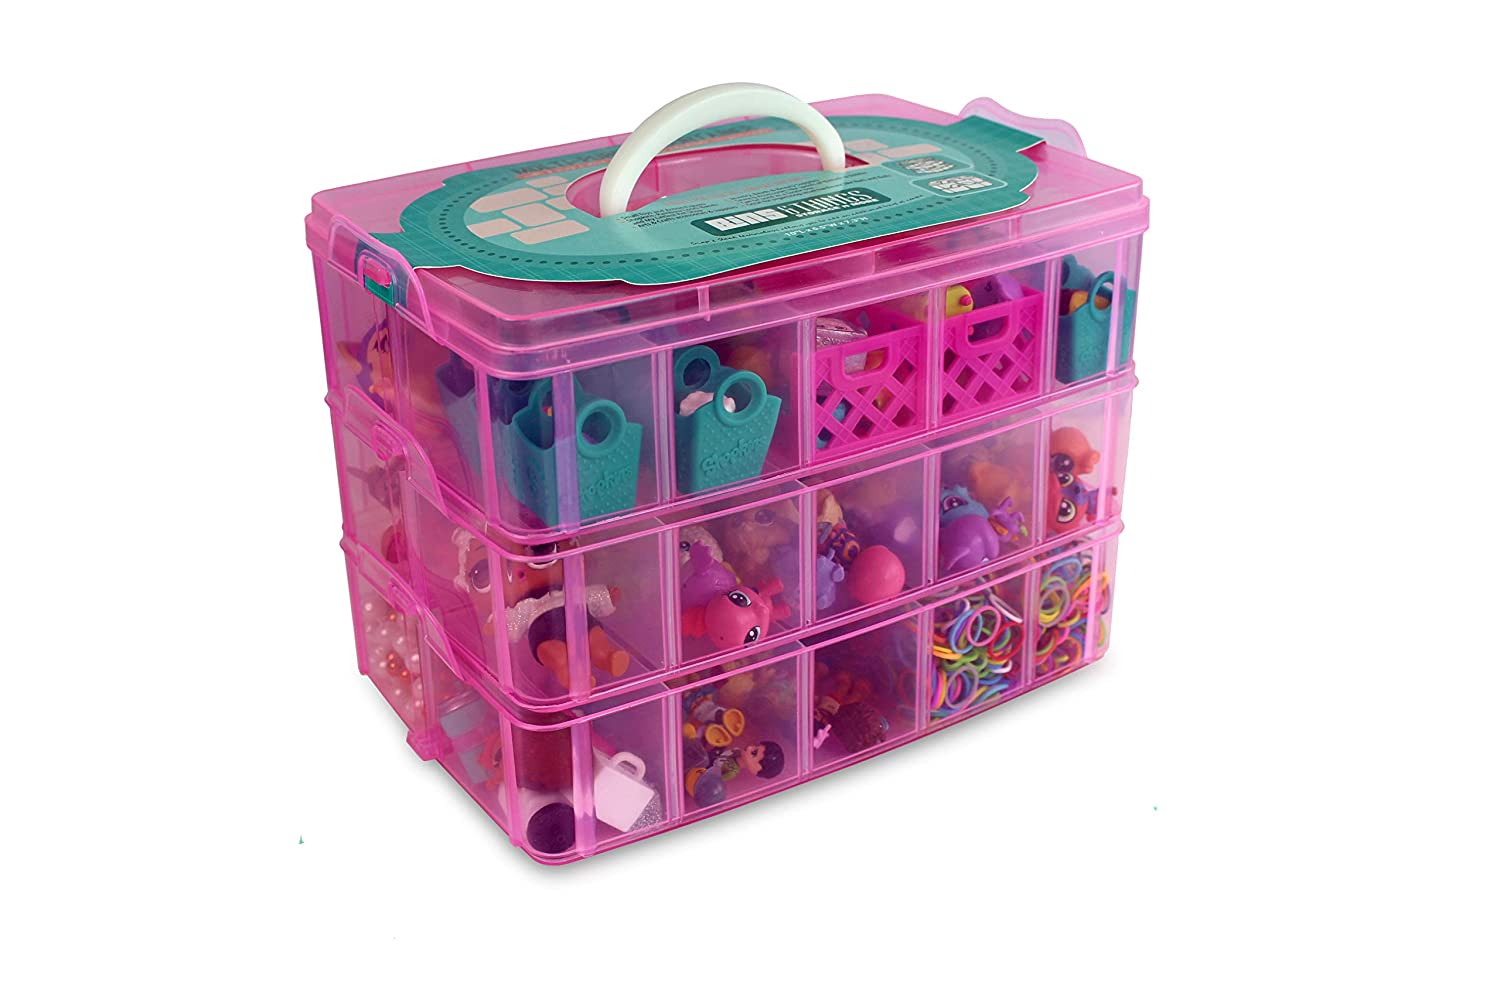 Bins & Things Stackable Storage Container for Shopkins Littlest Pet Shop Rainbow Loom Beads Disney Tsum Tsum Figures and Arts & Crafts Accessories with 30 Adjustable Compartments, Pink Pink_Large